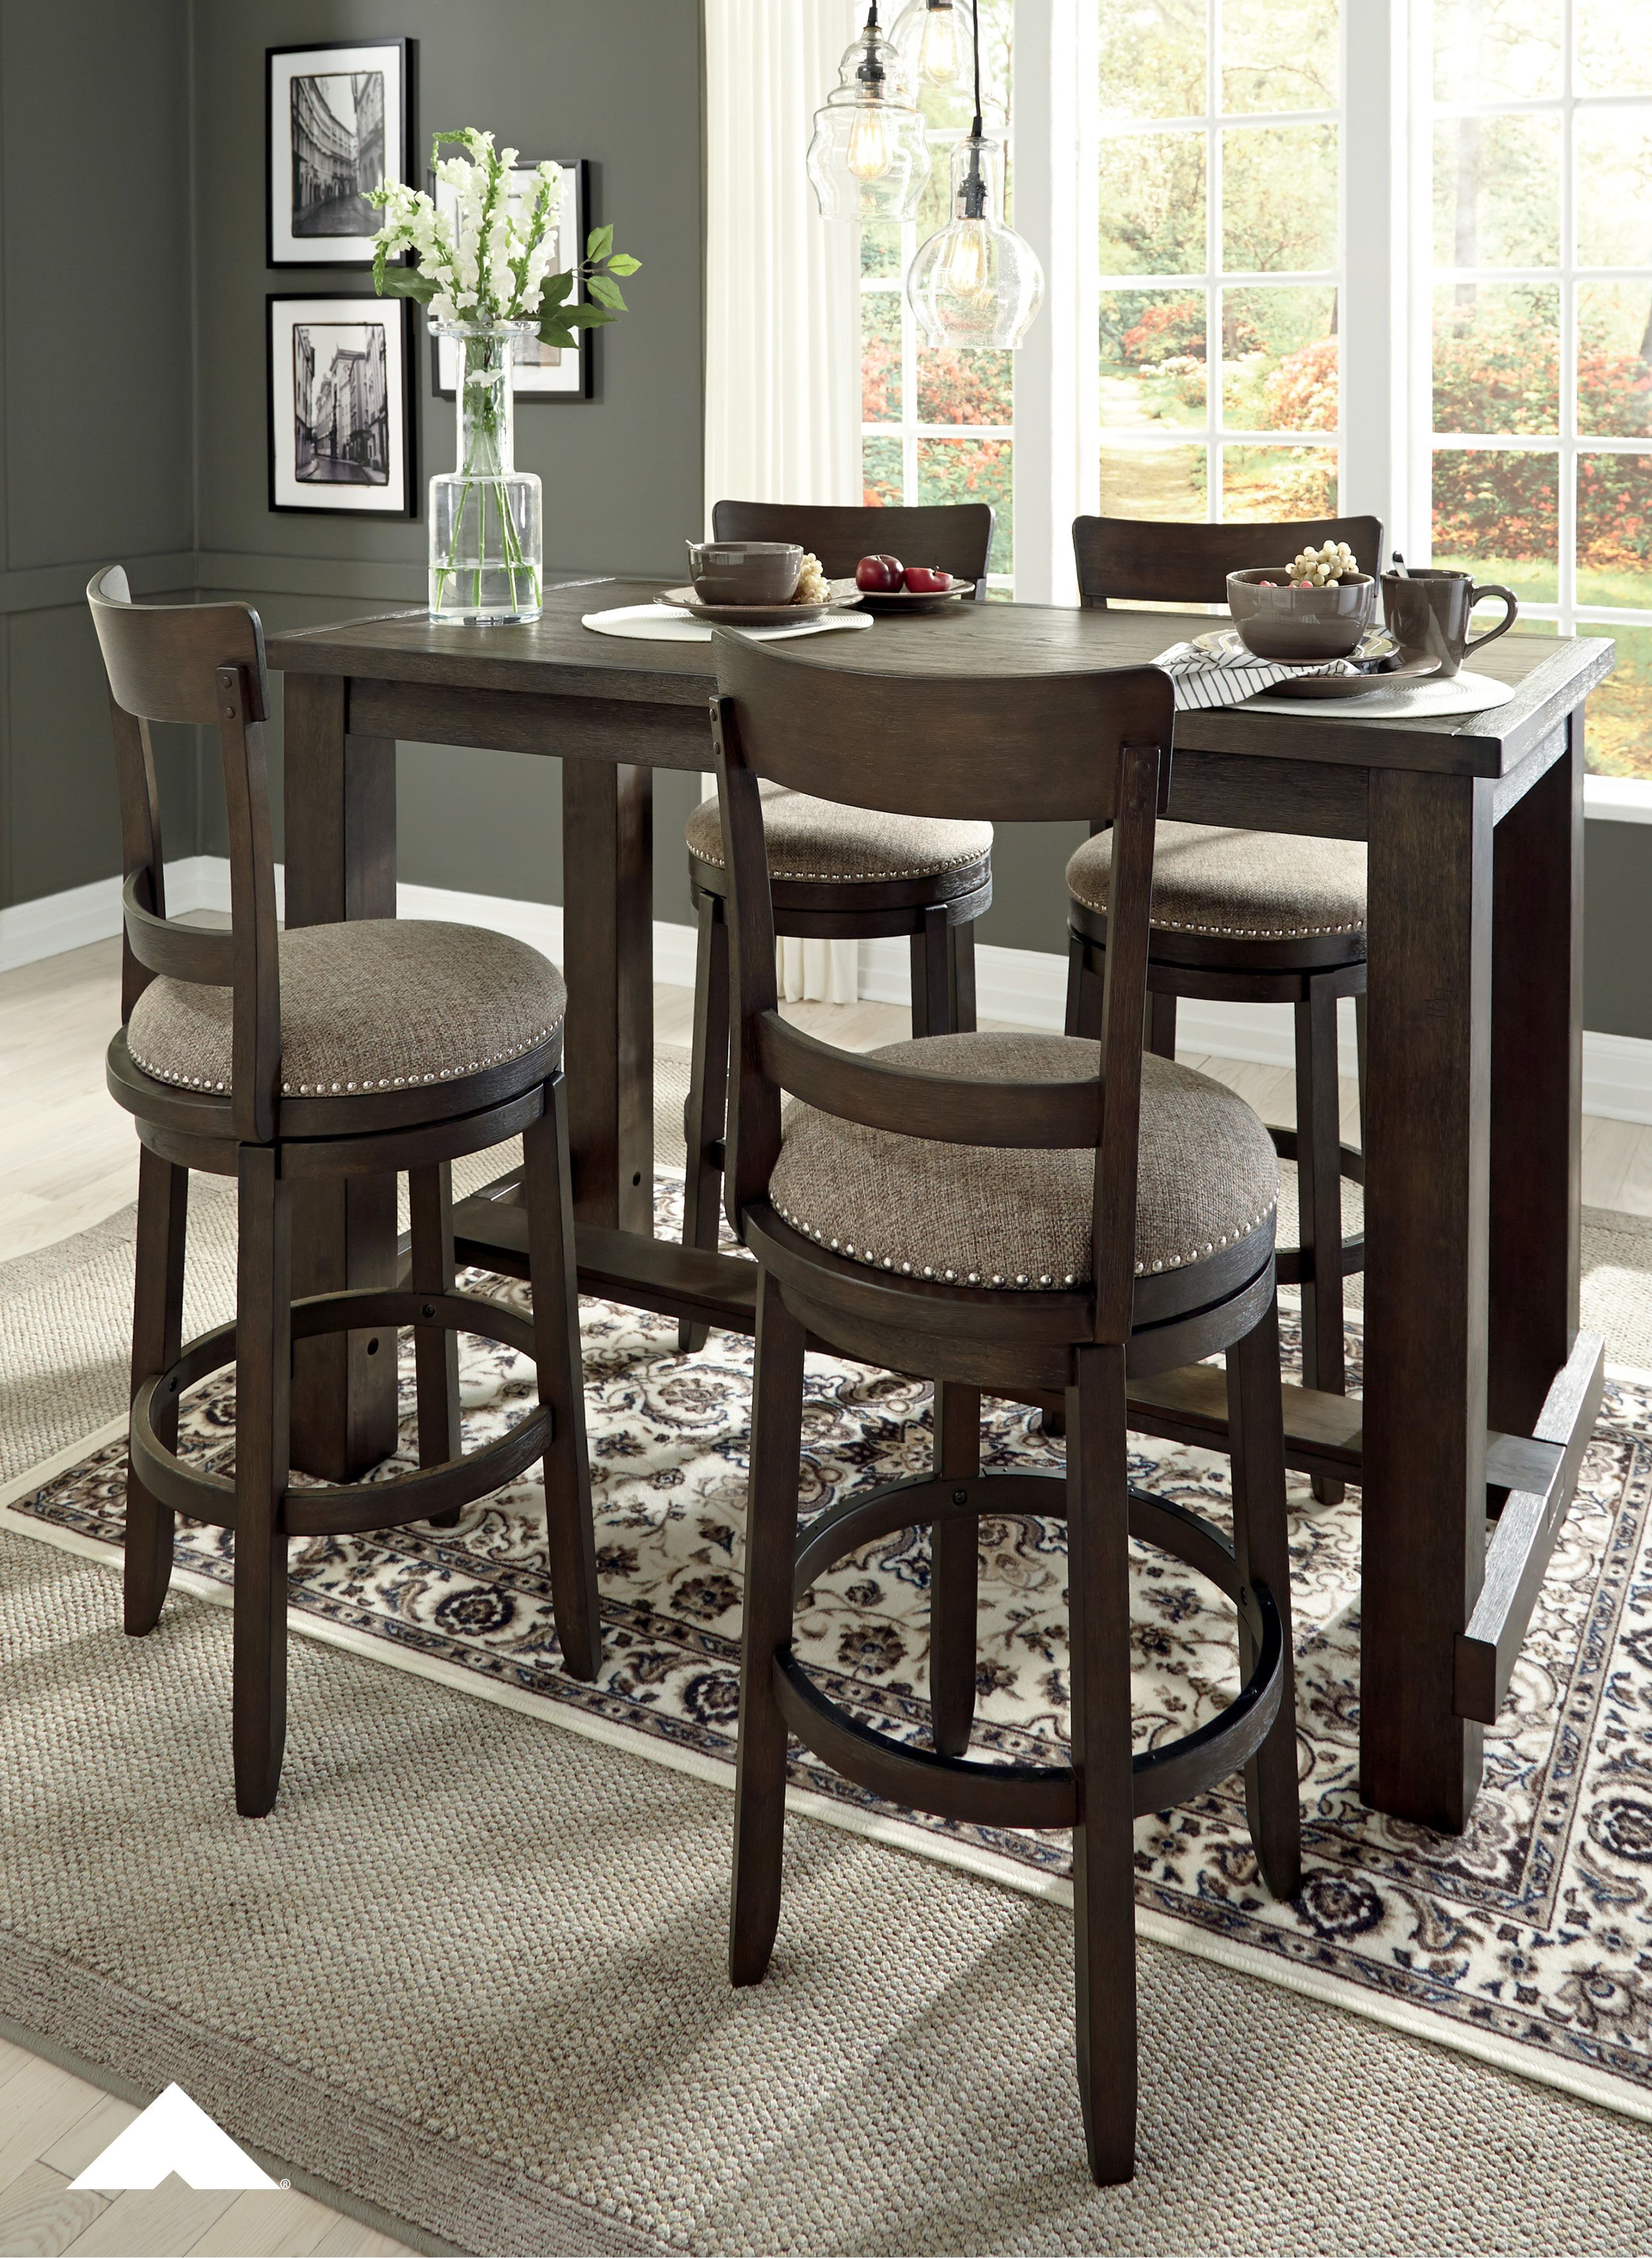 Drewing brown dining room counterheight table and upholstered barstools armhouse styling for a trend right casual look constructed with acacia solids and